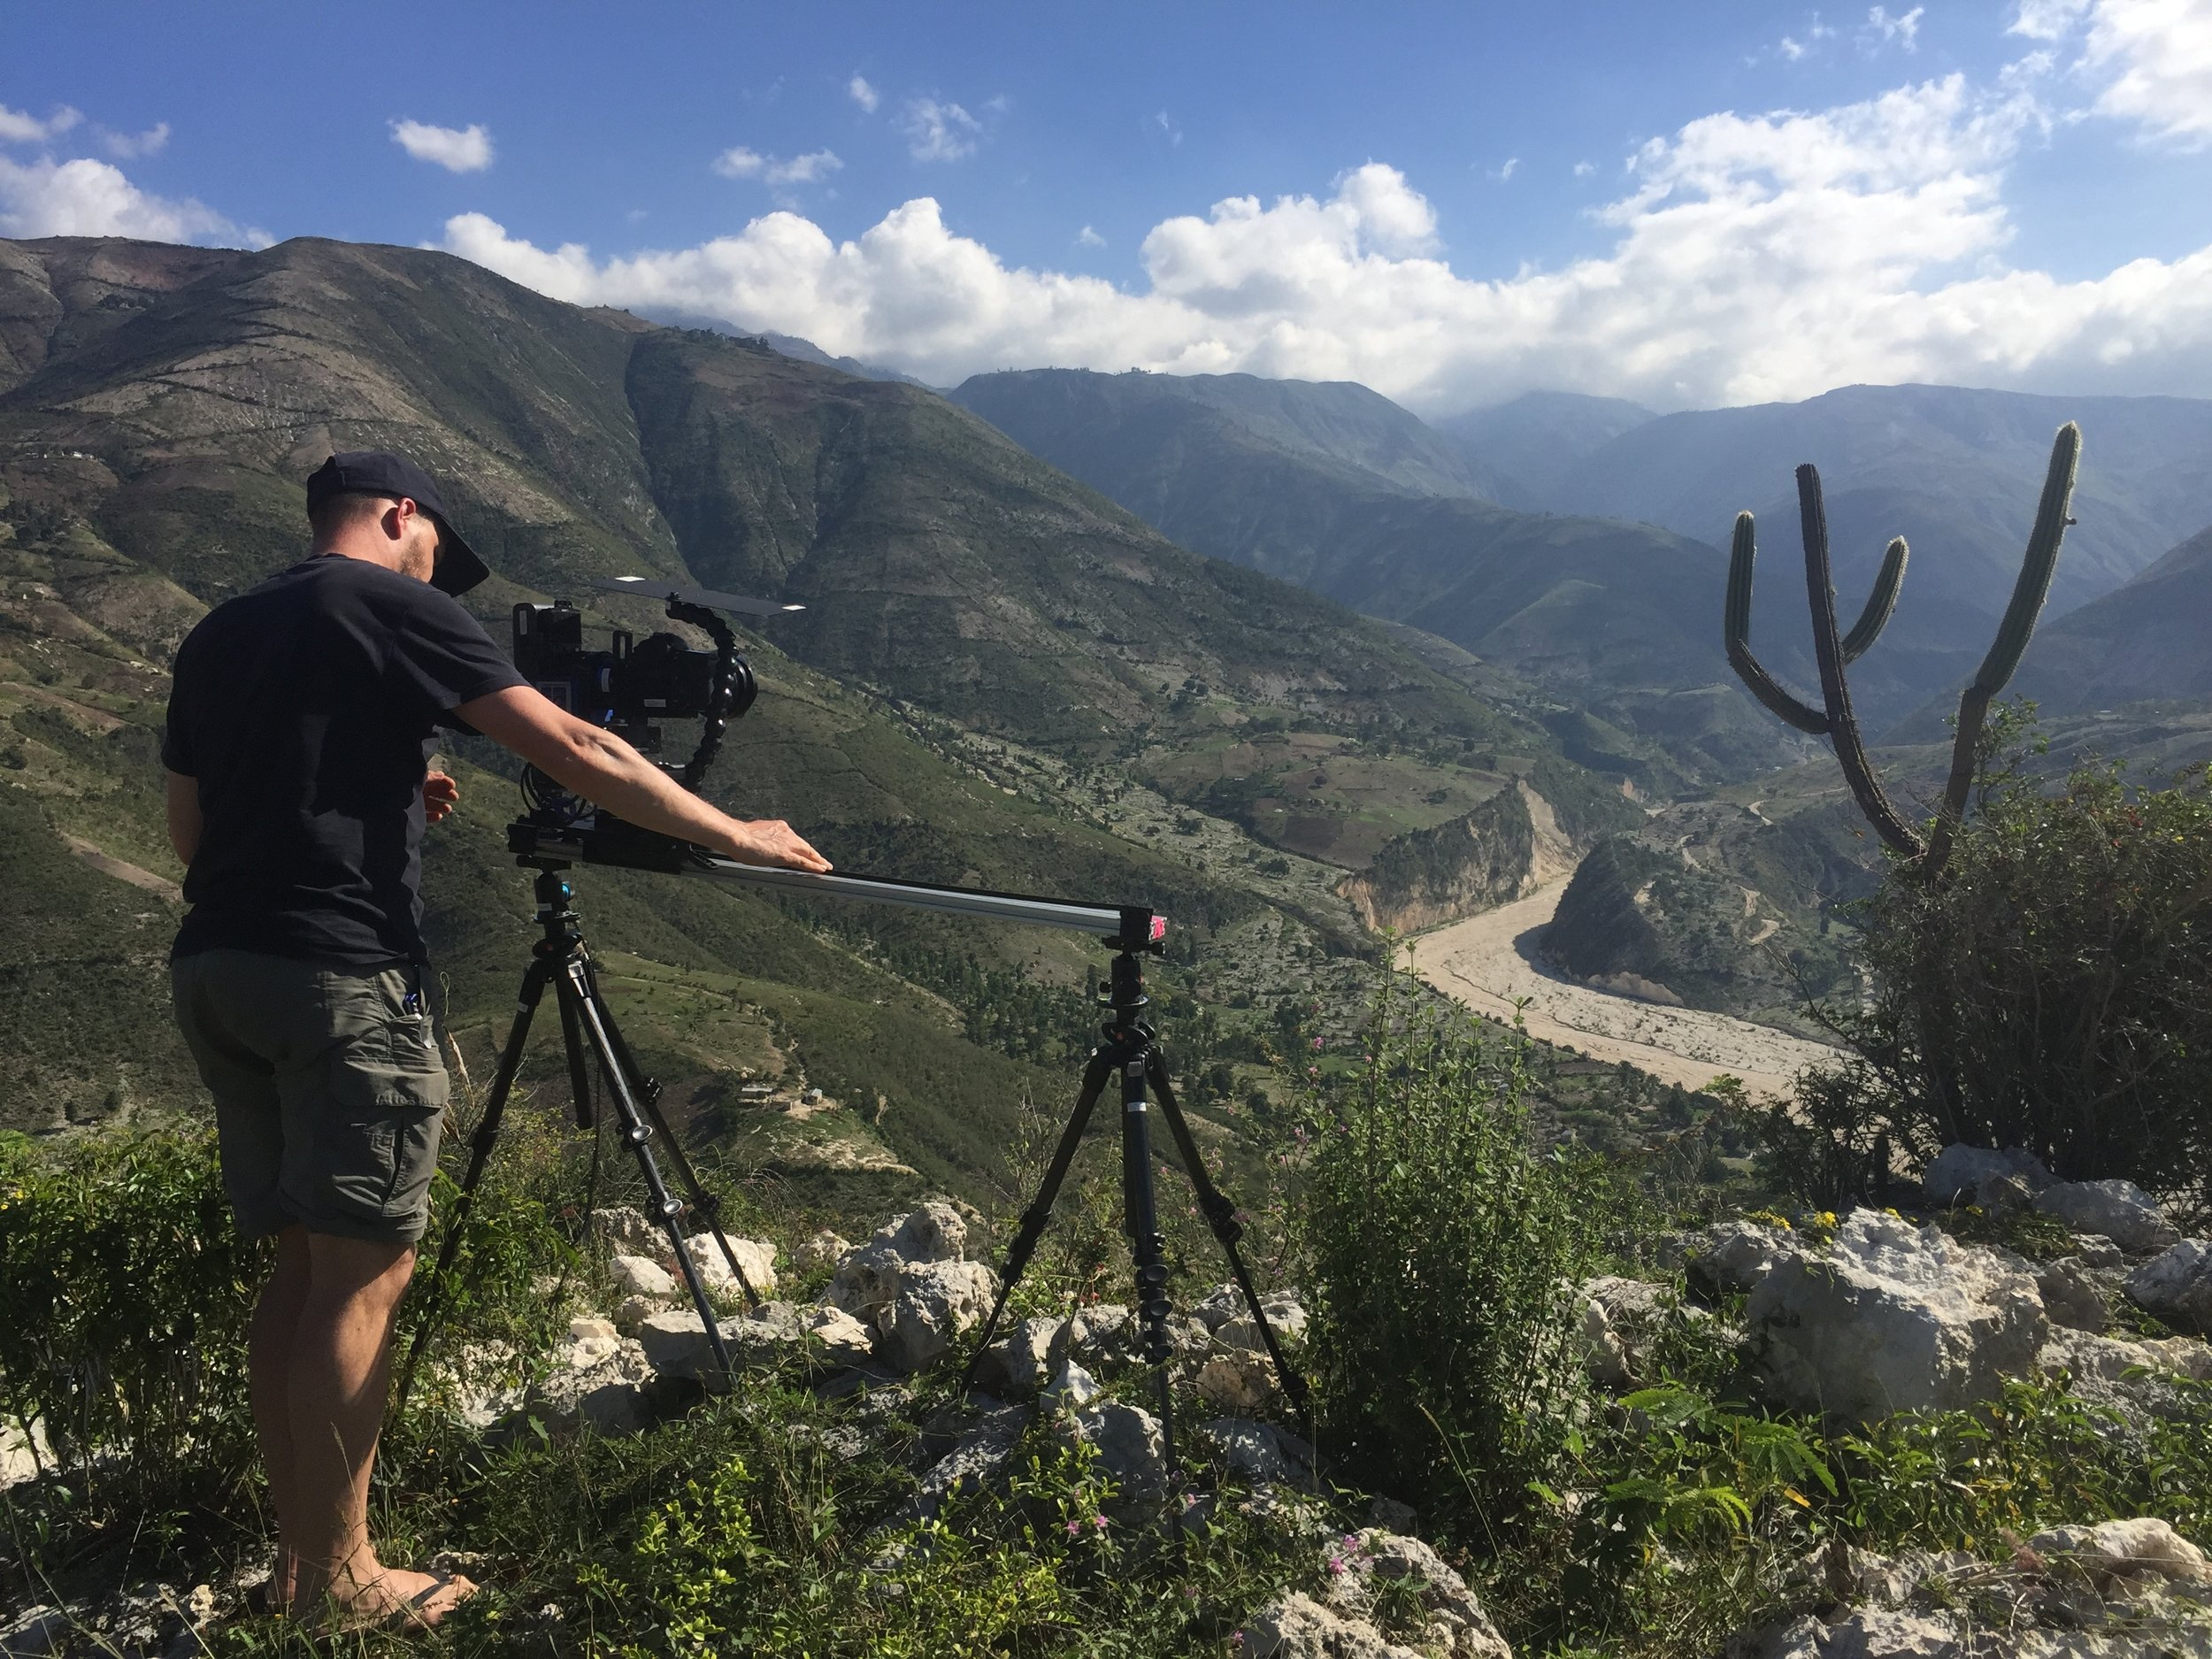 photographer using slider in nature, filming valley